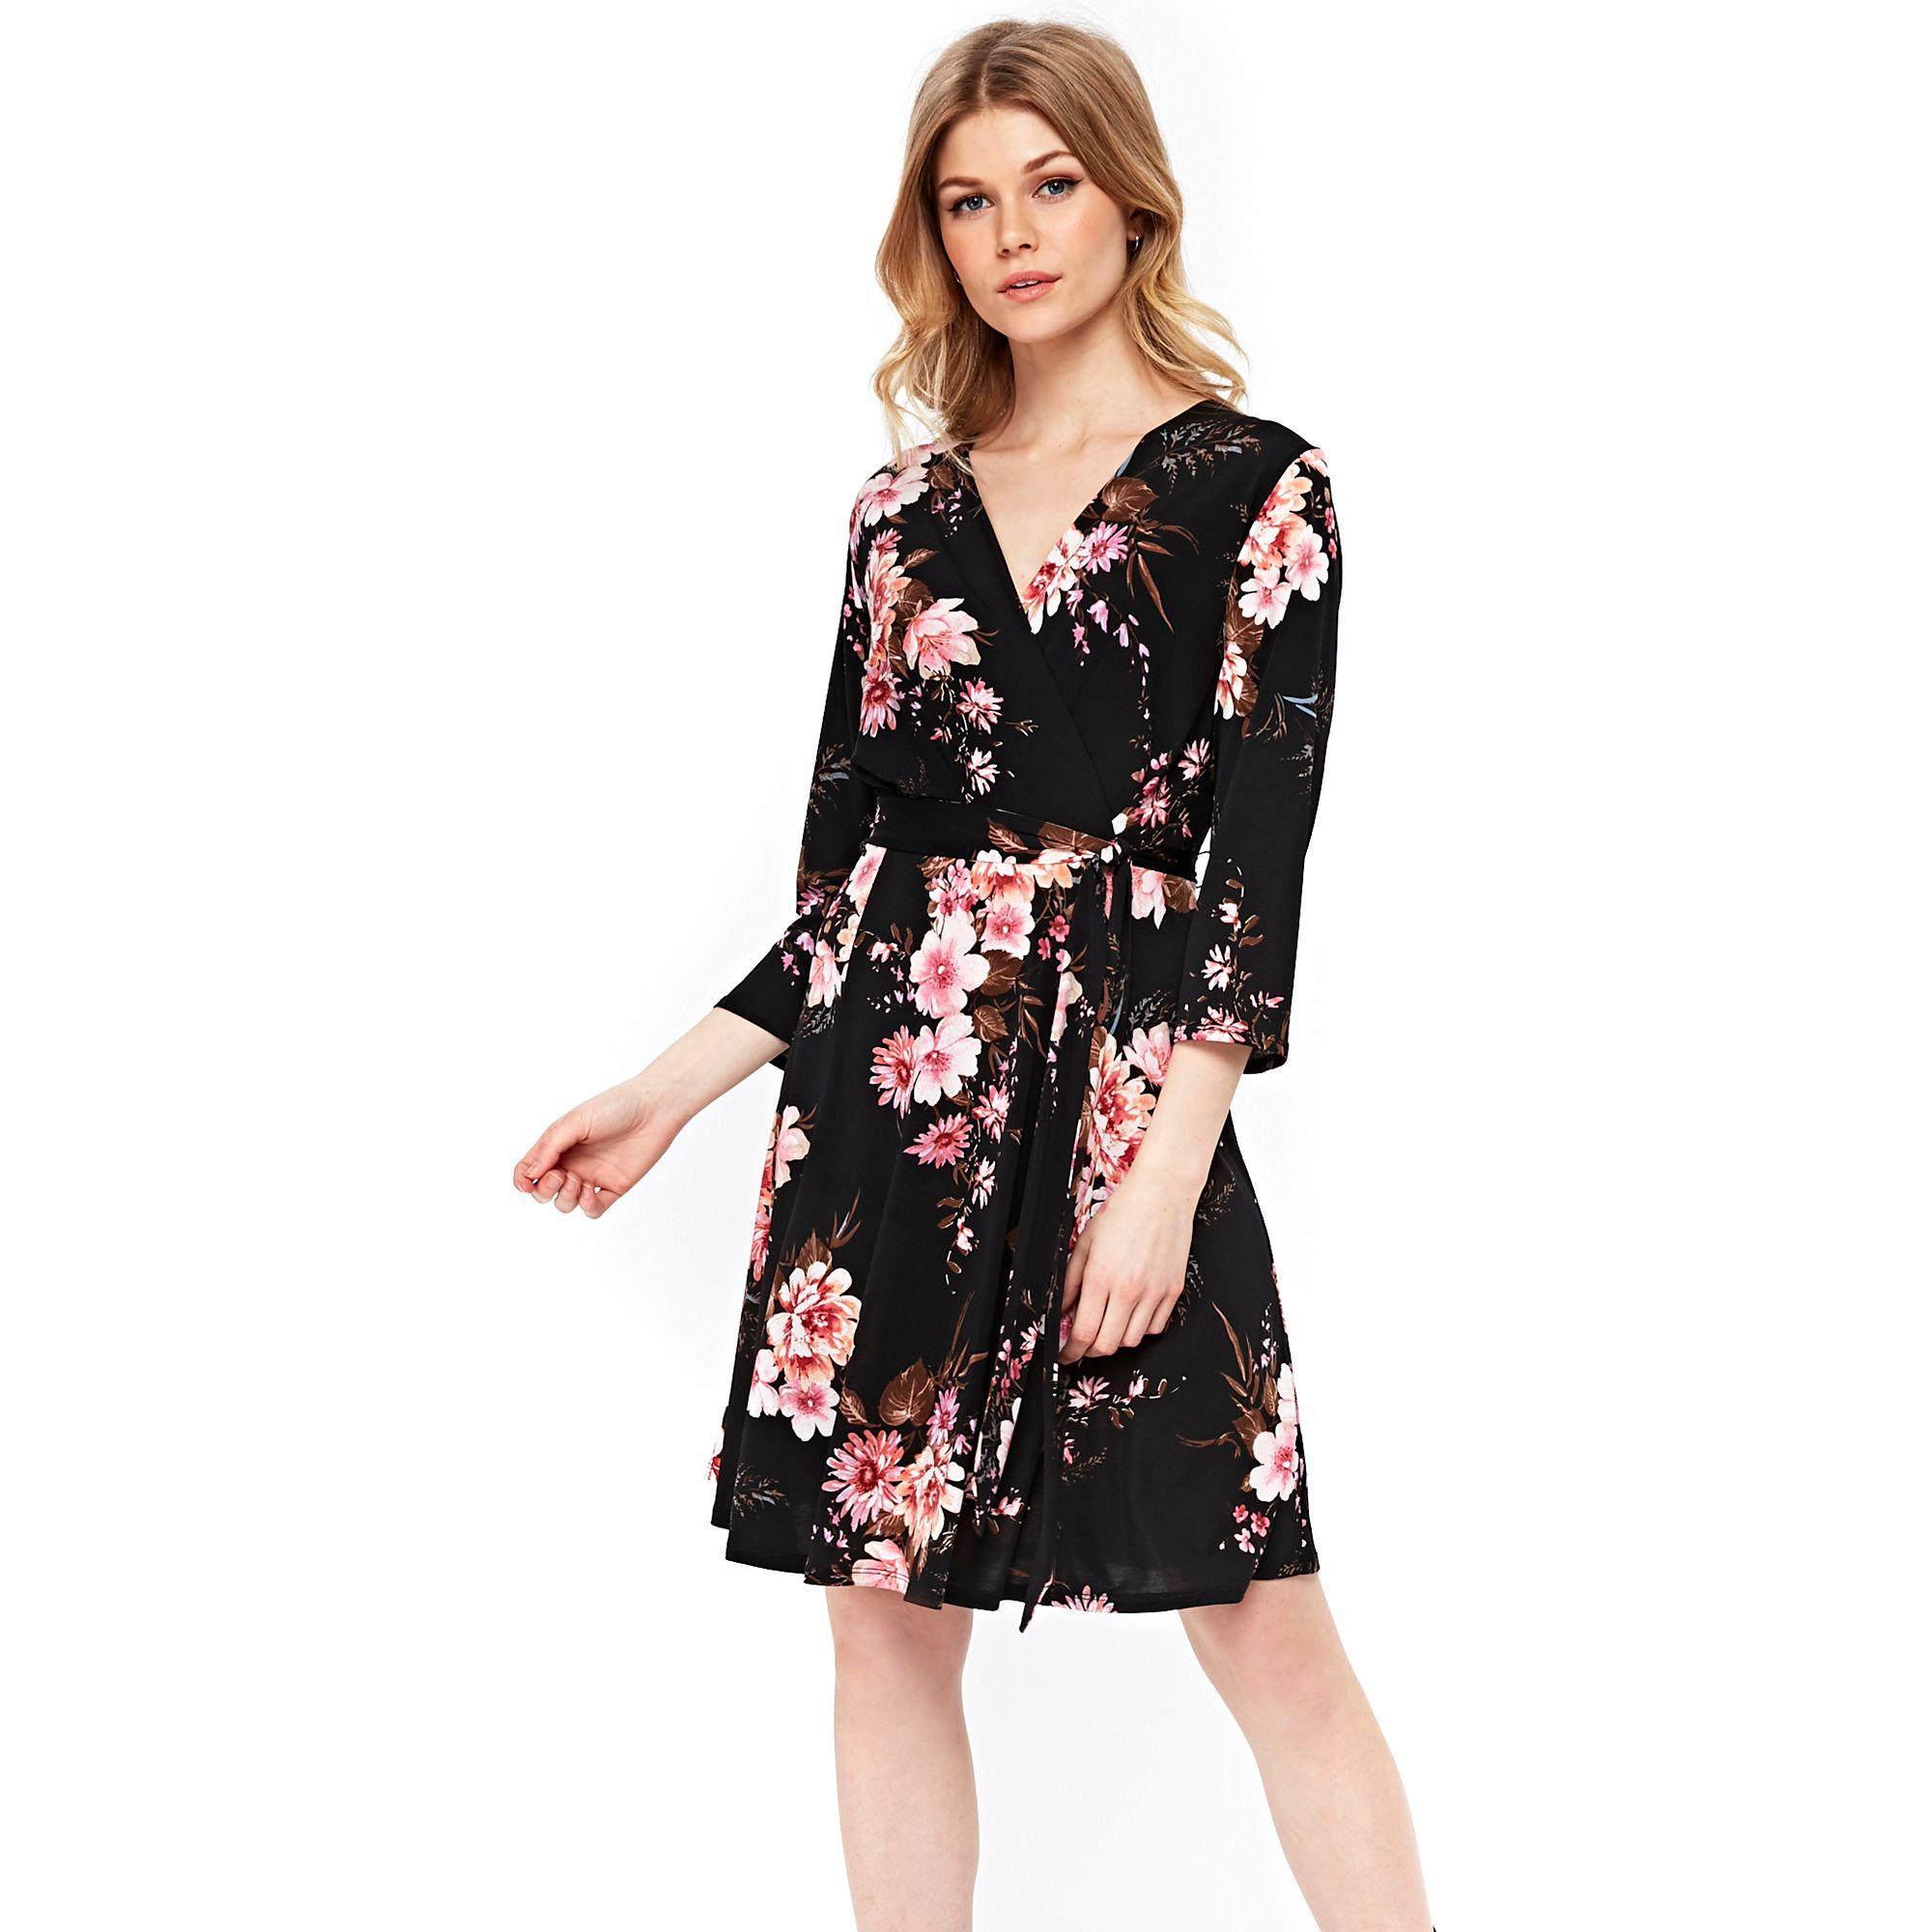 Fit Flare In Floral Print Dress And Black Wallis Lyst Petite IY9DWEH2